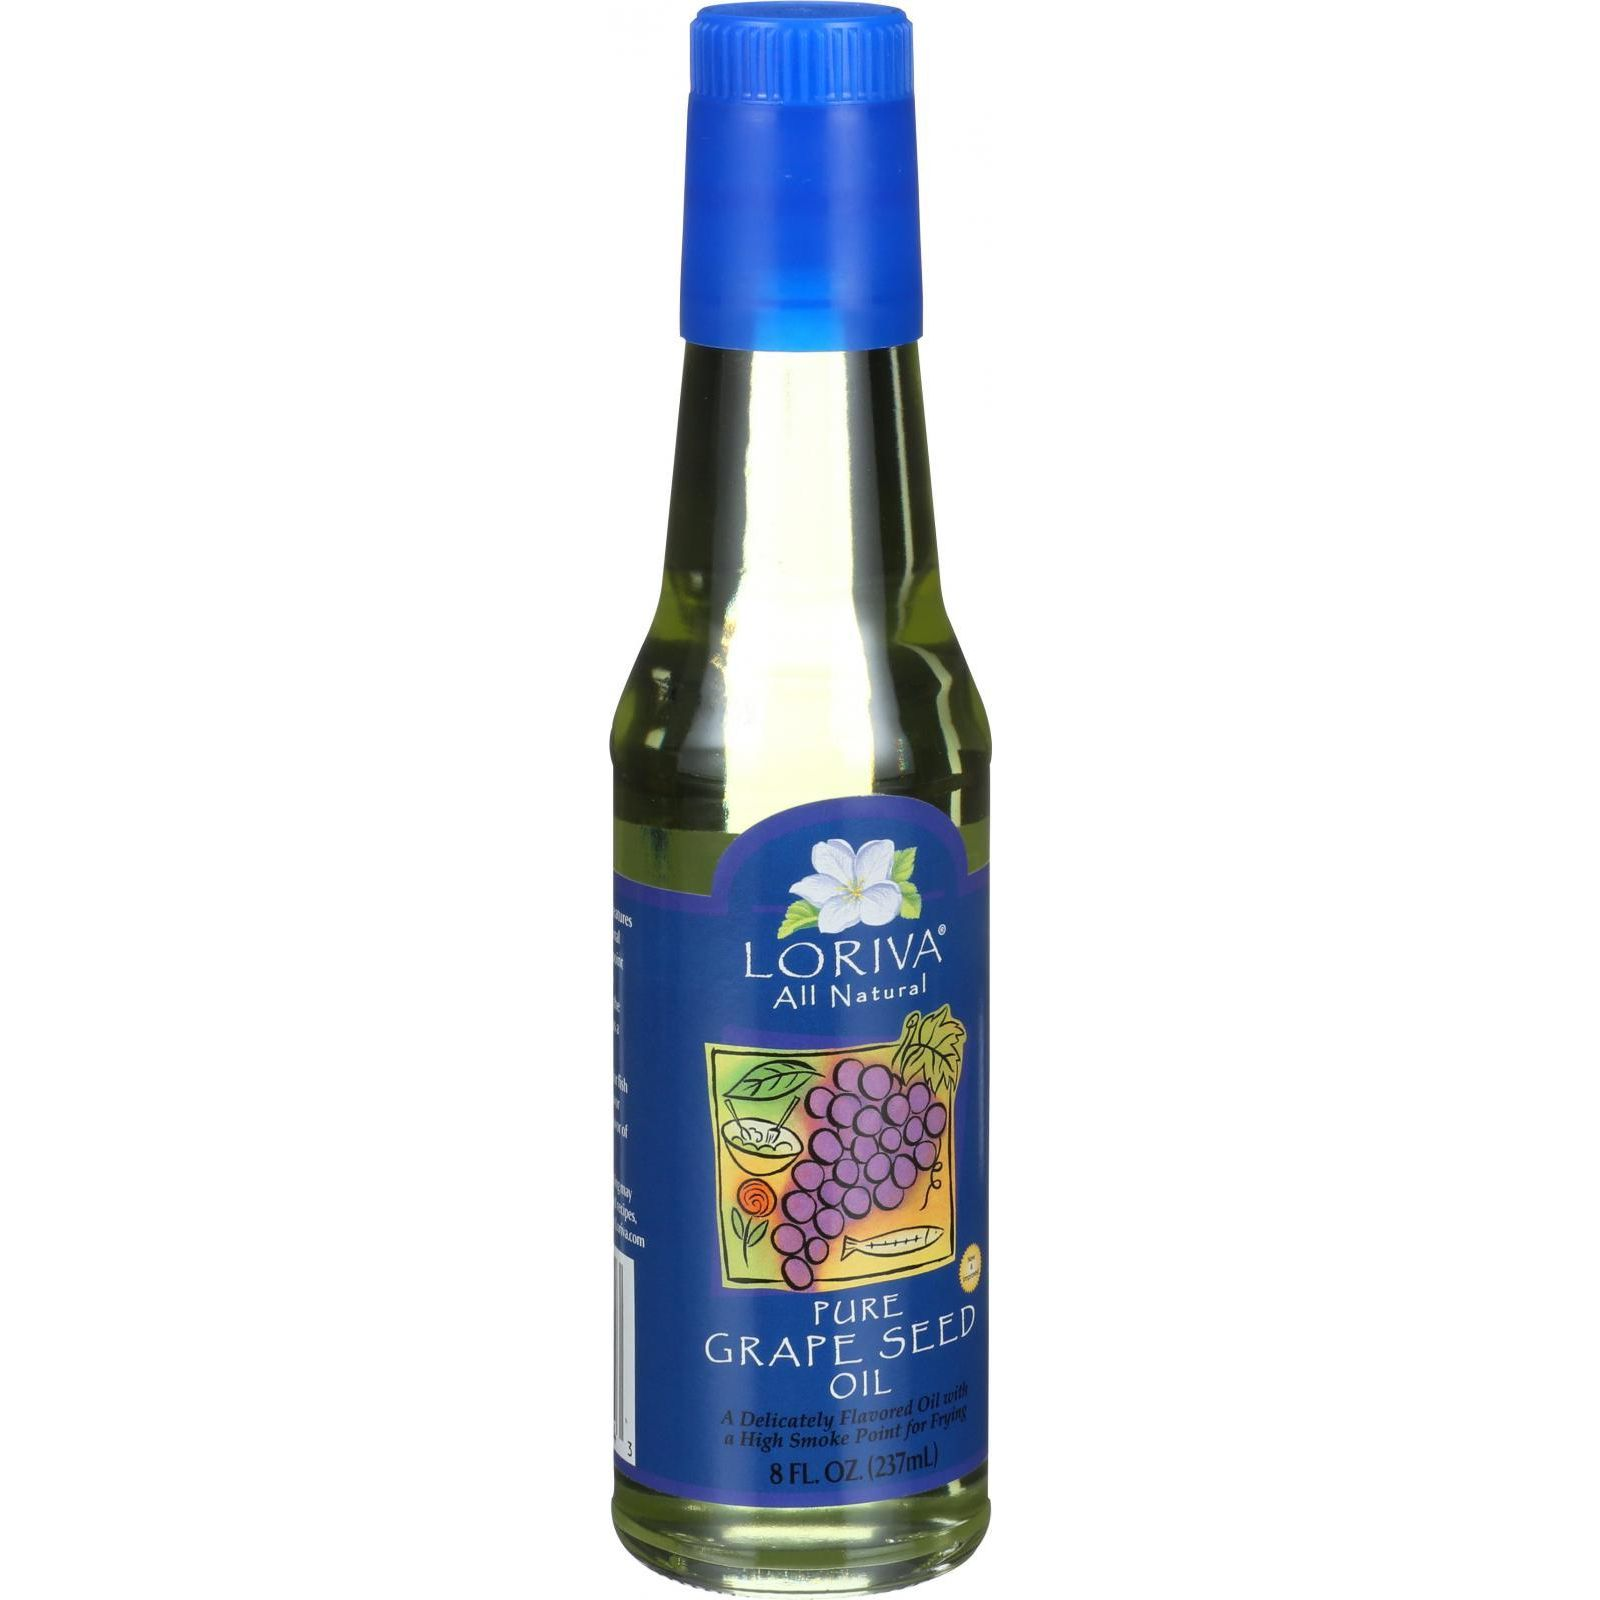 Loriva Grapeseed Oil - Expeller Pressed - Italian - 8 oz